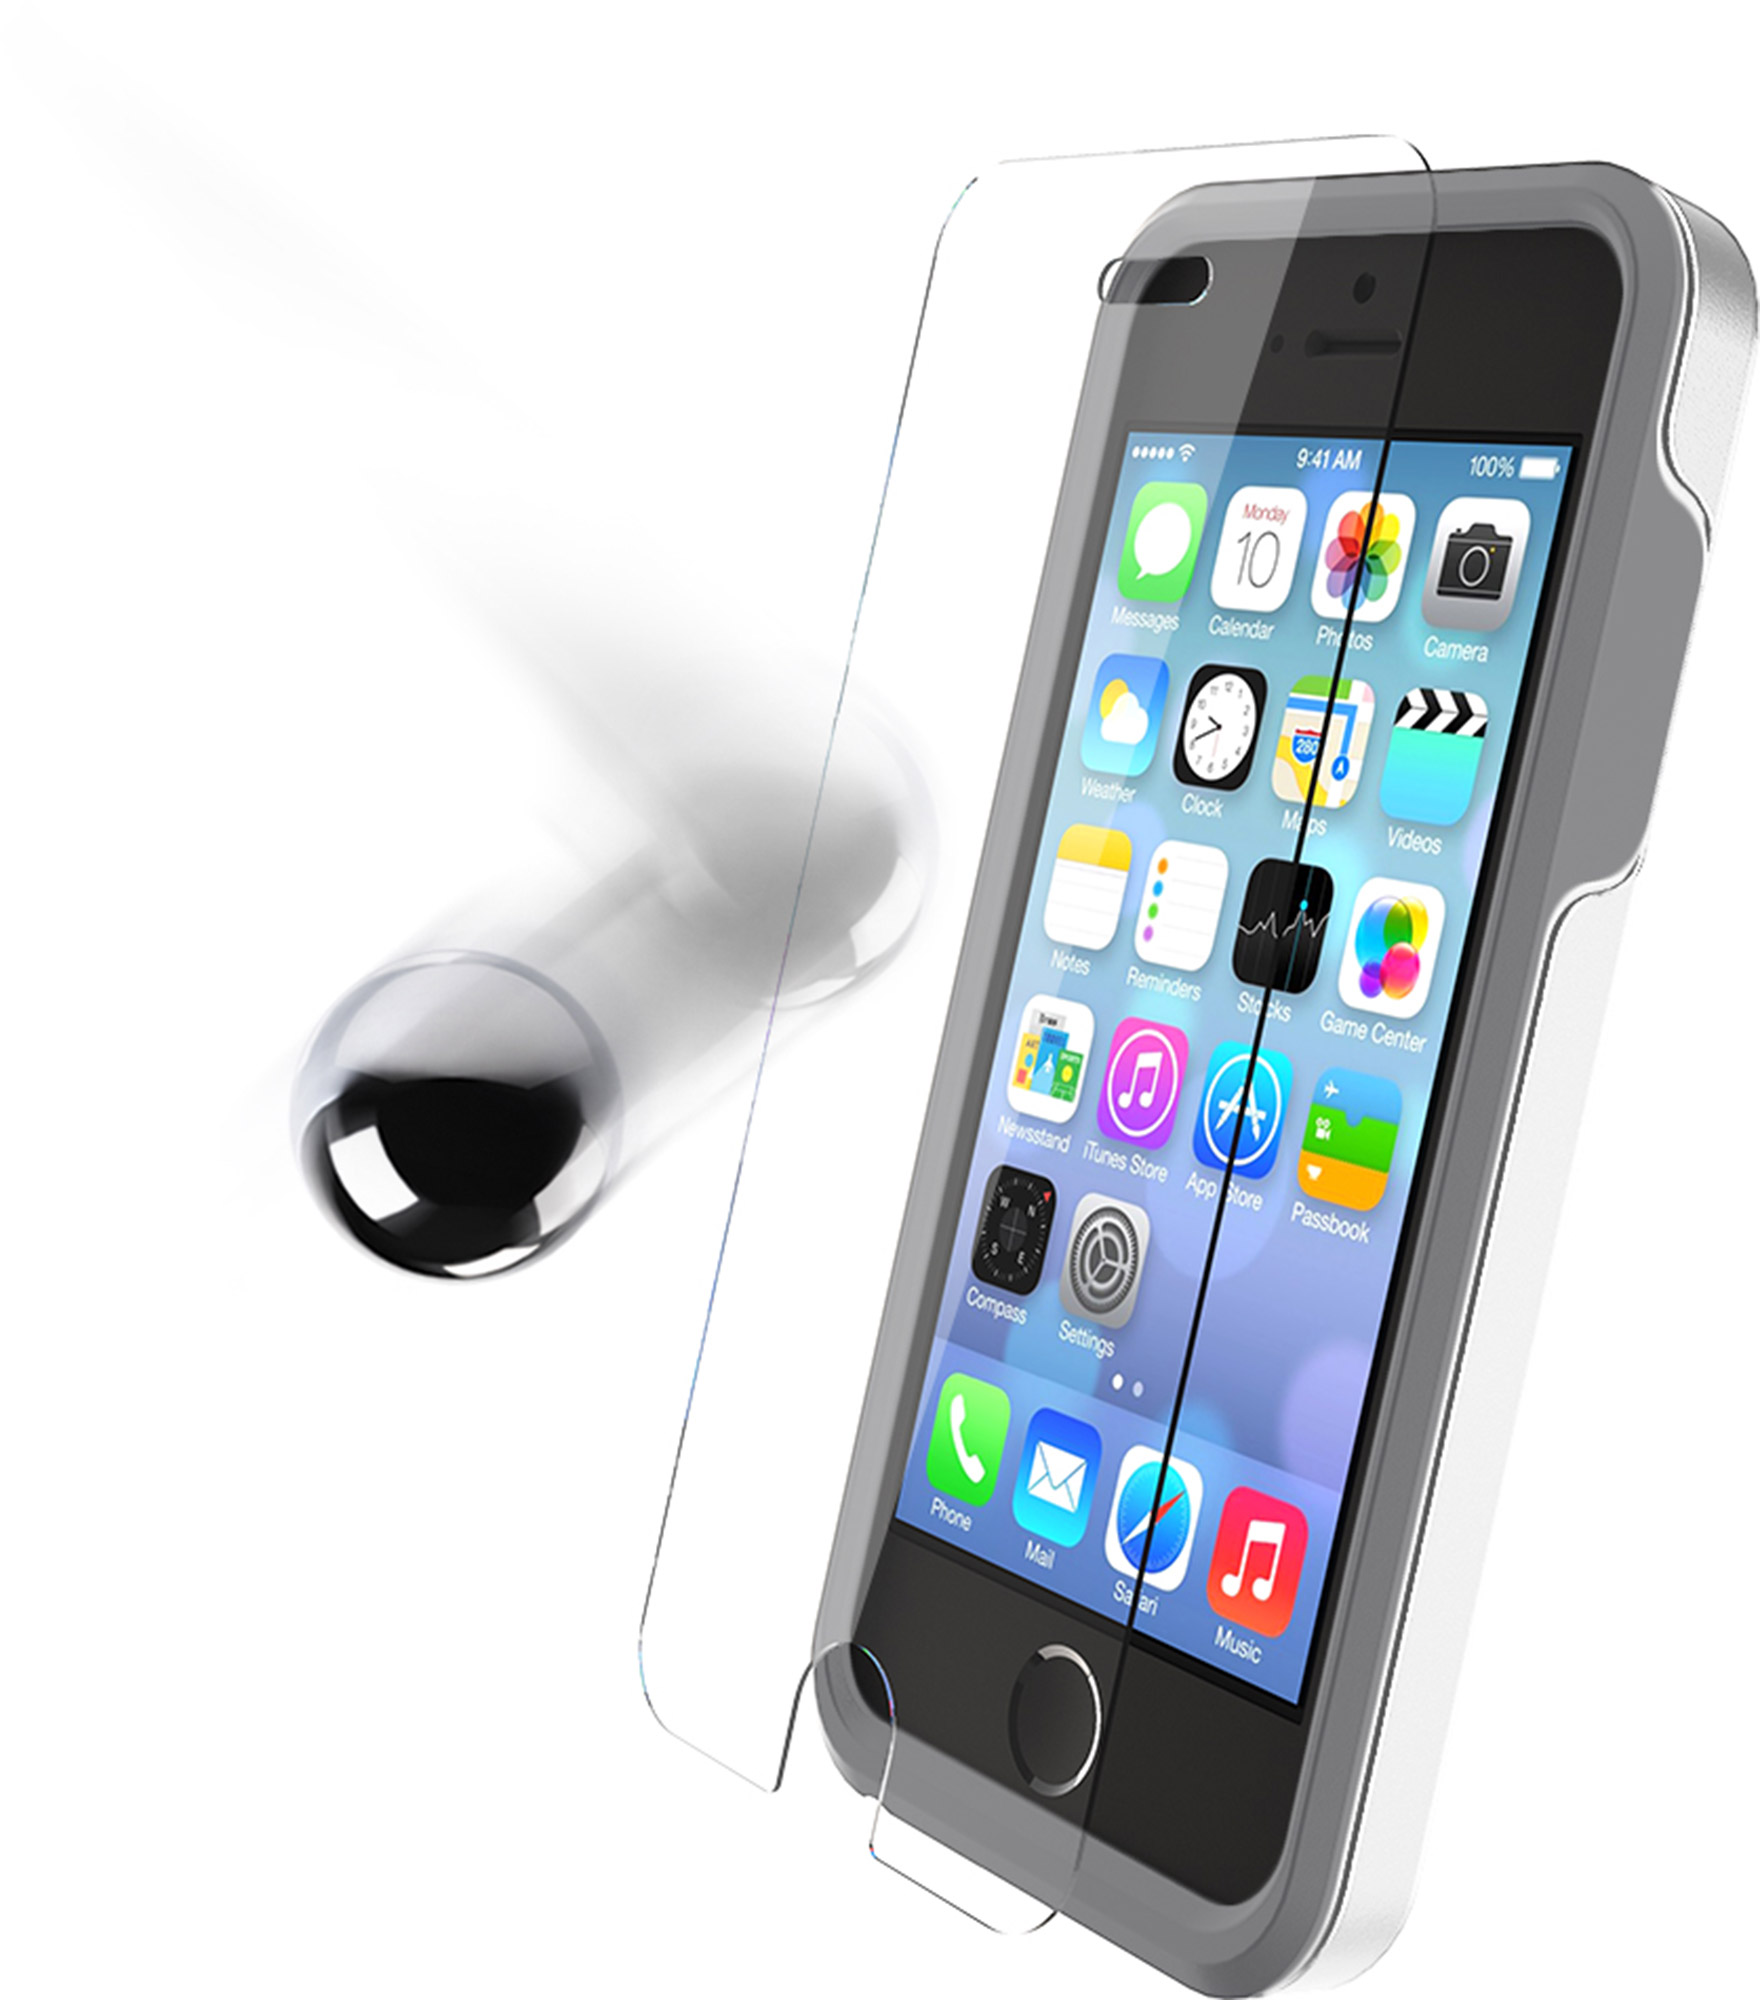 OtterBox Alpha Glass Screen Protector for iPhone 5/5s and iPhone 5c